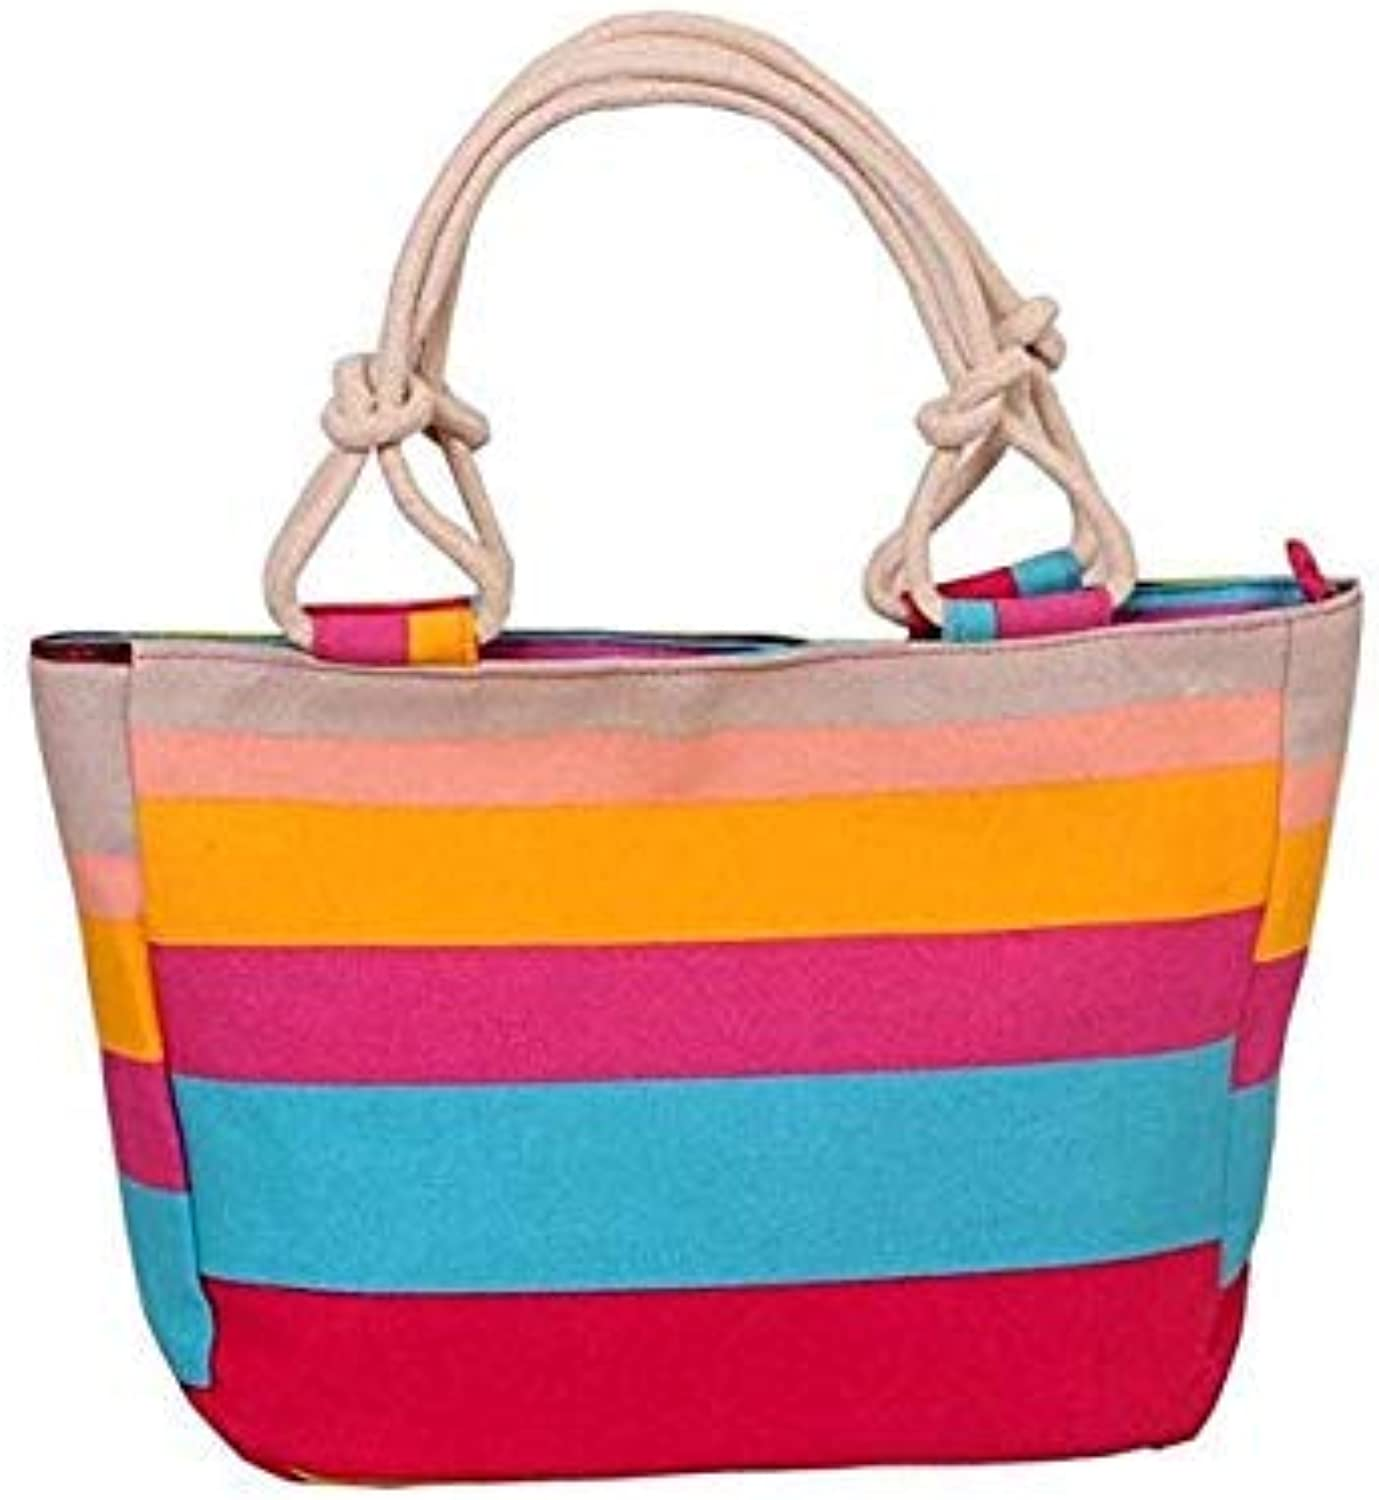 Fashion Folding Women Big Size Handbag Tote Ladies Casual Flower Printing Canvas Graffiti Shoulder Bag Beach Bolsa Feminina Pink red Strap